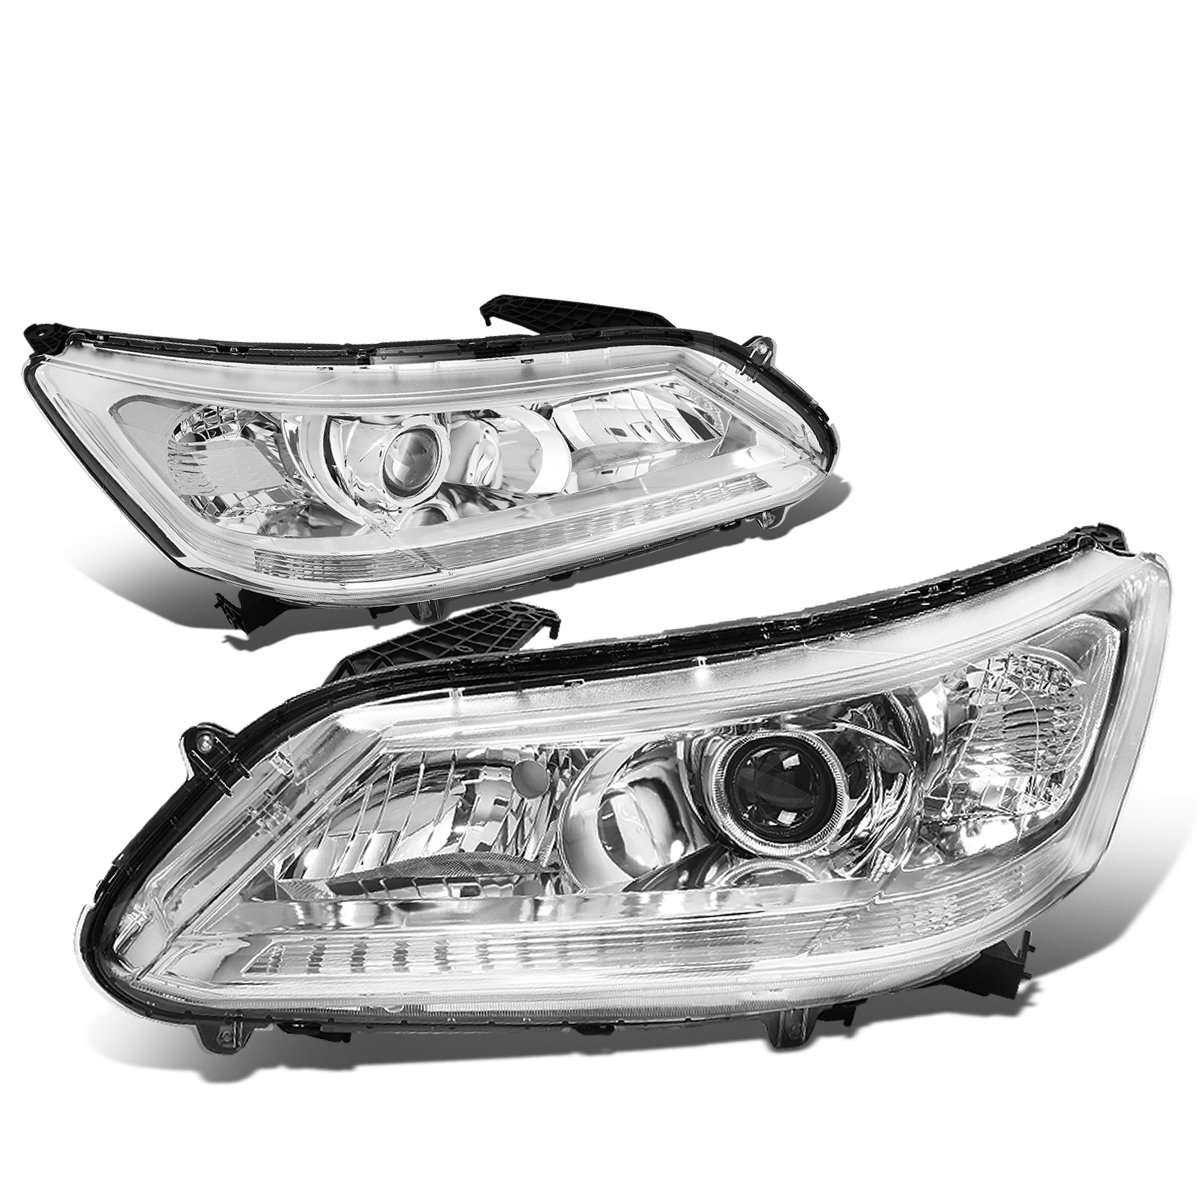 -Chrome 22 Post mount spotlight - 6 inch - 100W Halogen - Driver side WITH install kit 2007 Motorhome Class B FORD ECONOLINE VAN CHASSIS